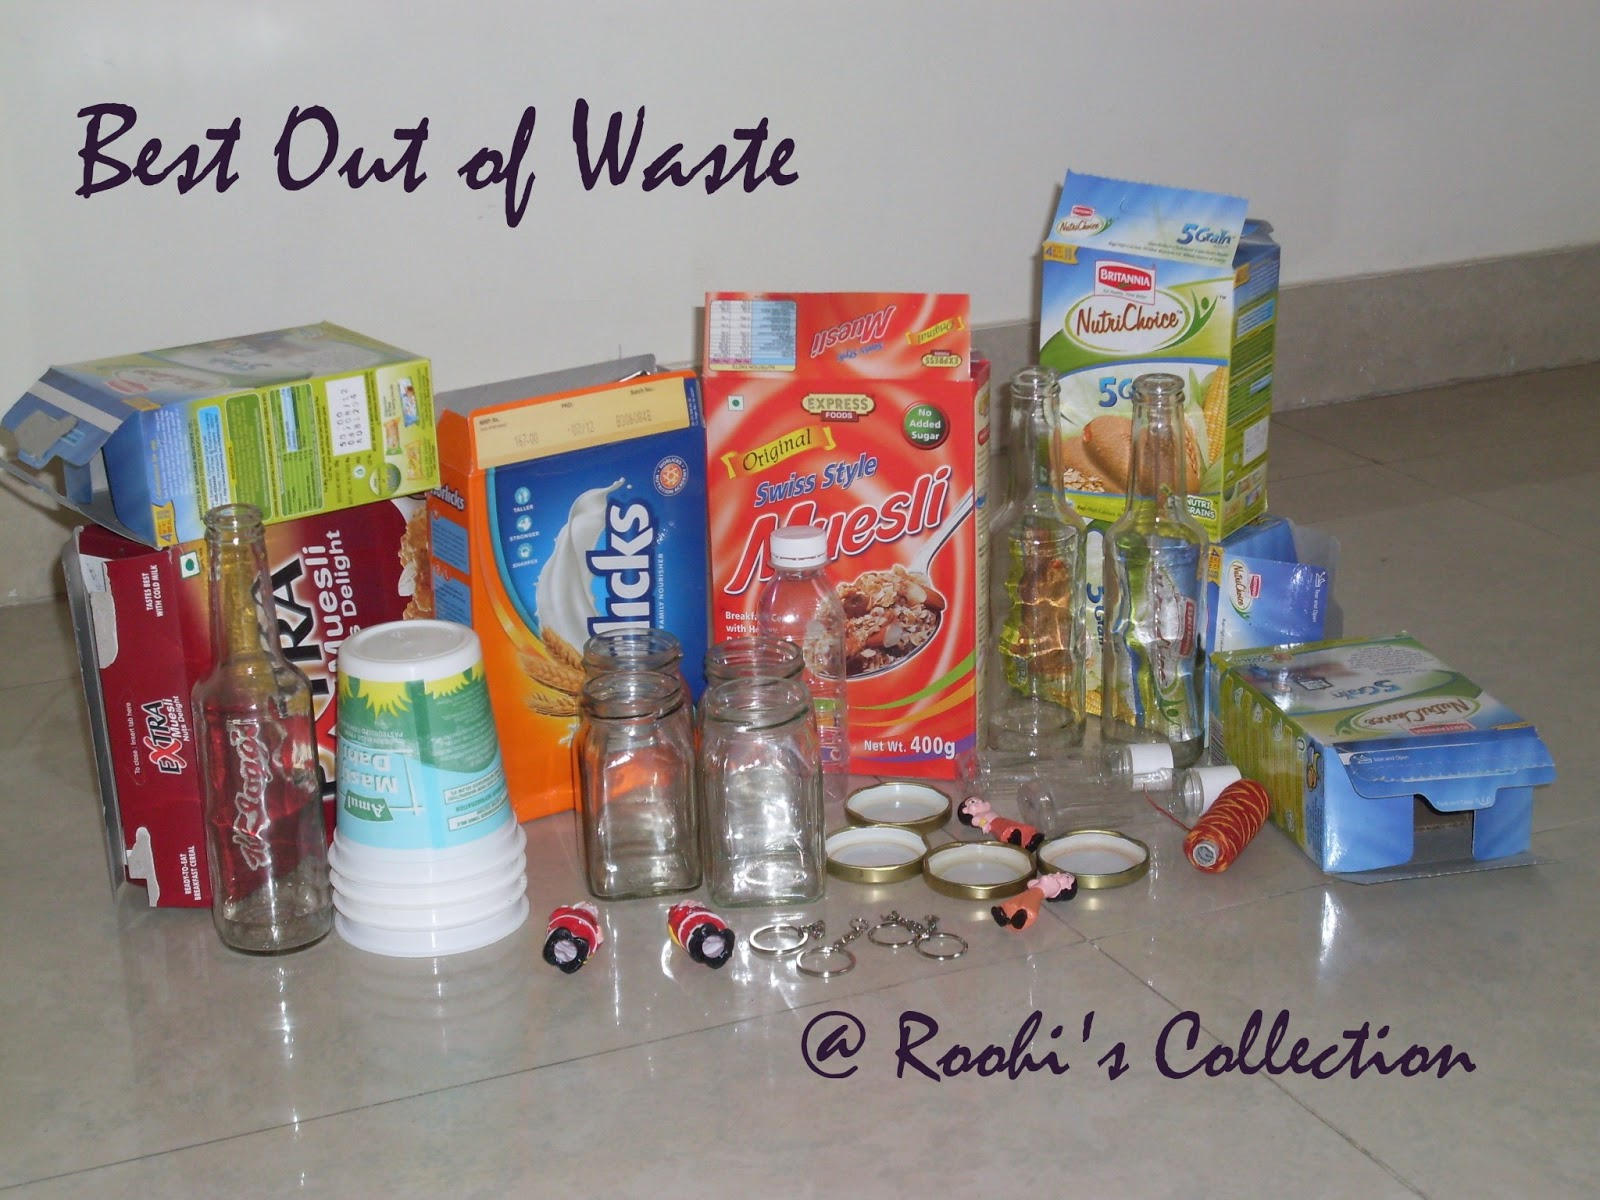 Roohi 39 s collections best out of waste workshop in pune for Best out of waste images